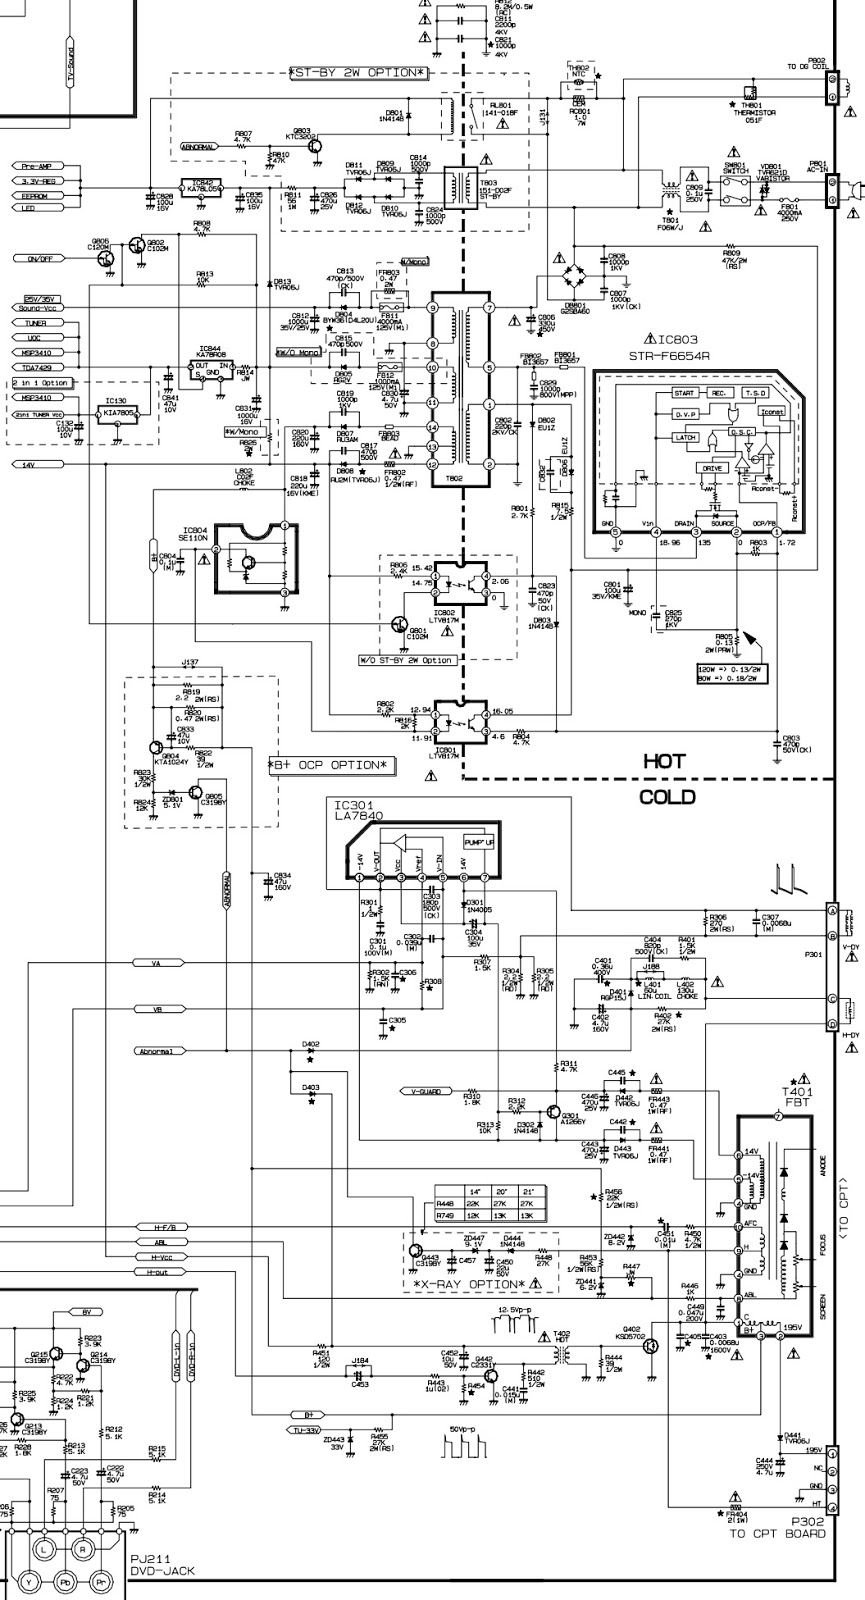 Lg Tv Schematic Diagrams - Fusebox and Wiring Diagram wires-elect -  wires-elect.paoloemartina.itpaoloemartina.it